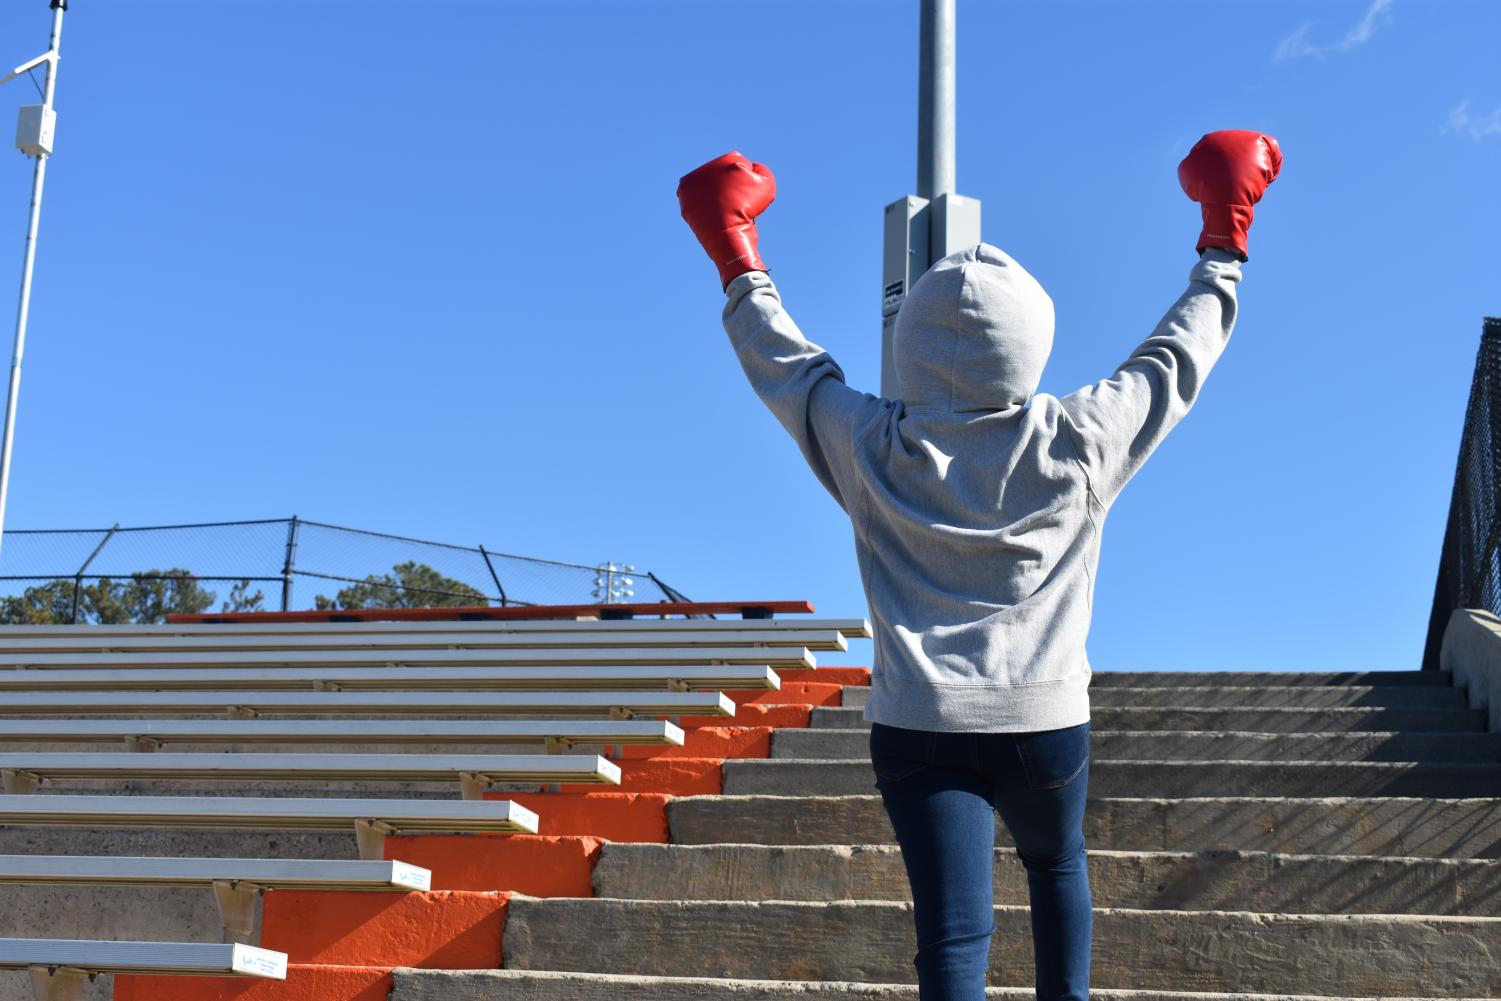 Mimicking the famous Rocky Balboa pose, he reminds viewers to never give up and keep striving to achieve their dreams no matter the obstacles they face. Adonis Creed inspires the future generations of boxing and continues to leave an impact on the boxing world. Together in Creed II Rocky works to train Adonis to commemorating his old days back in the ring.